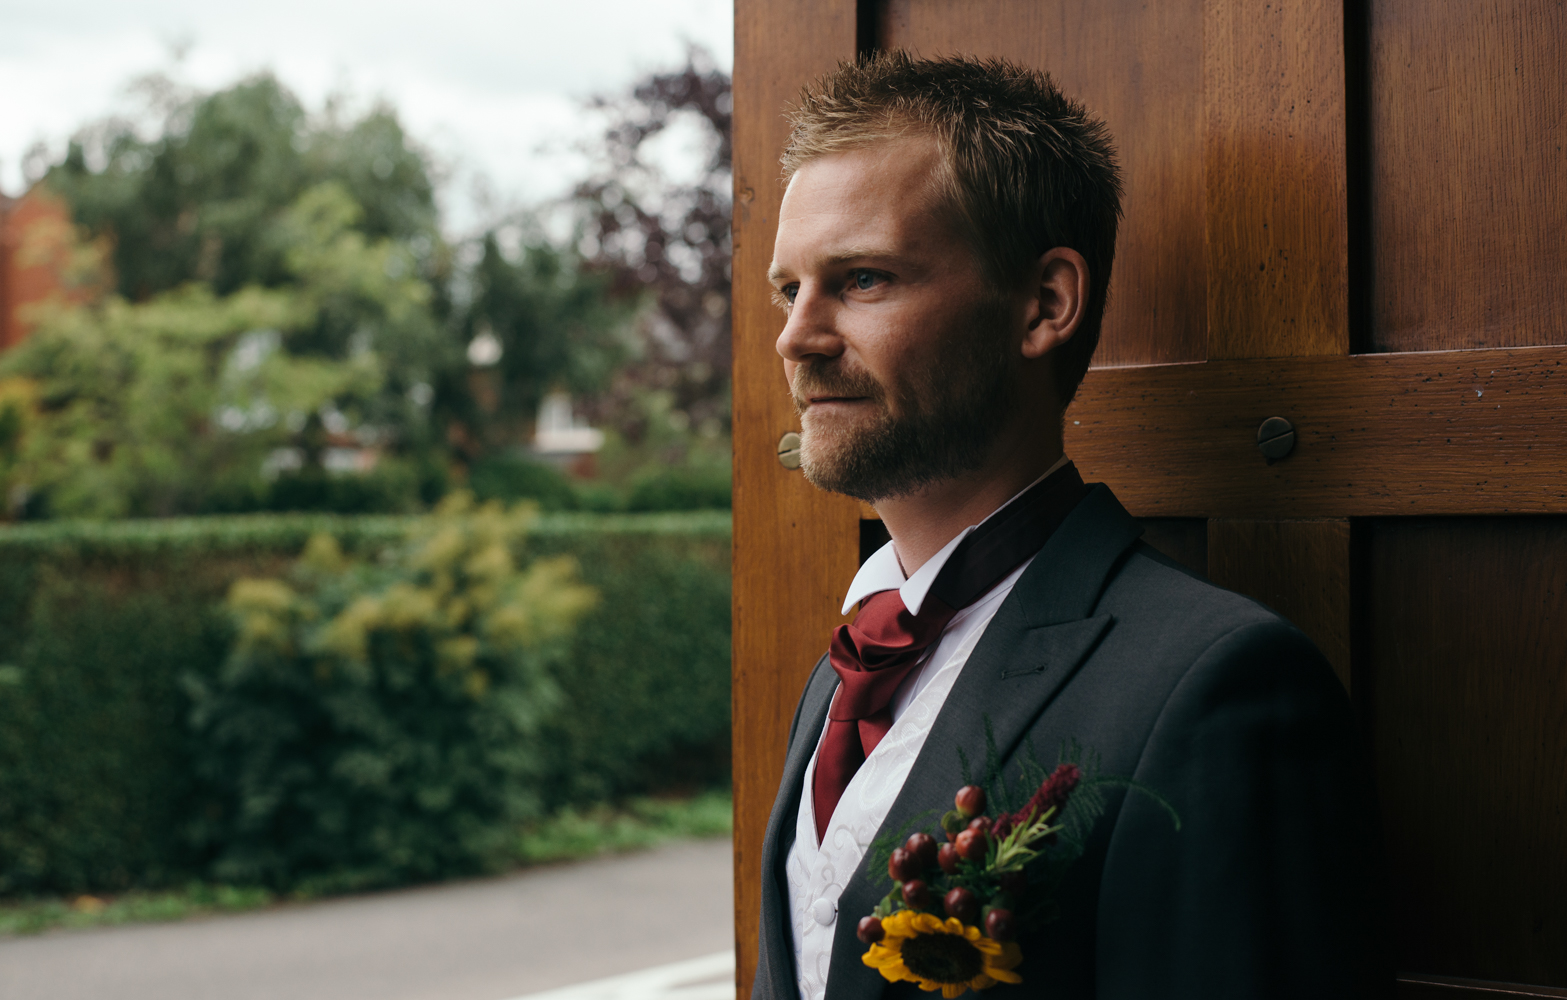 The groom standing welcoming family and guests at the church